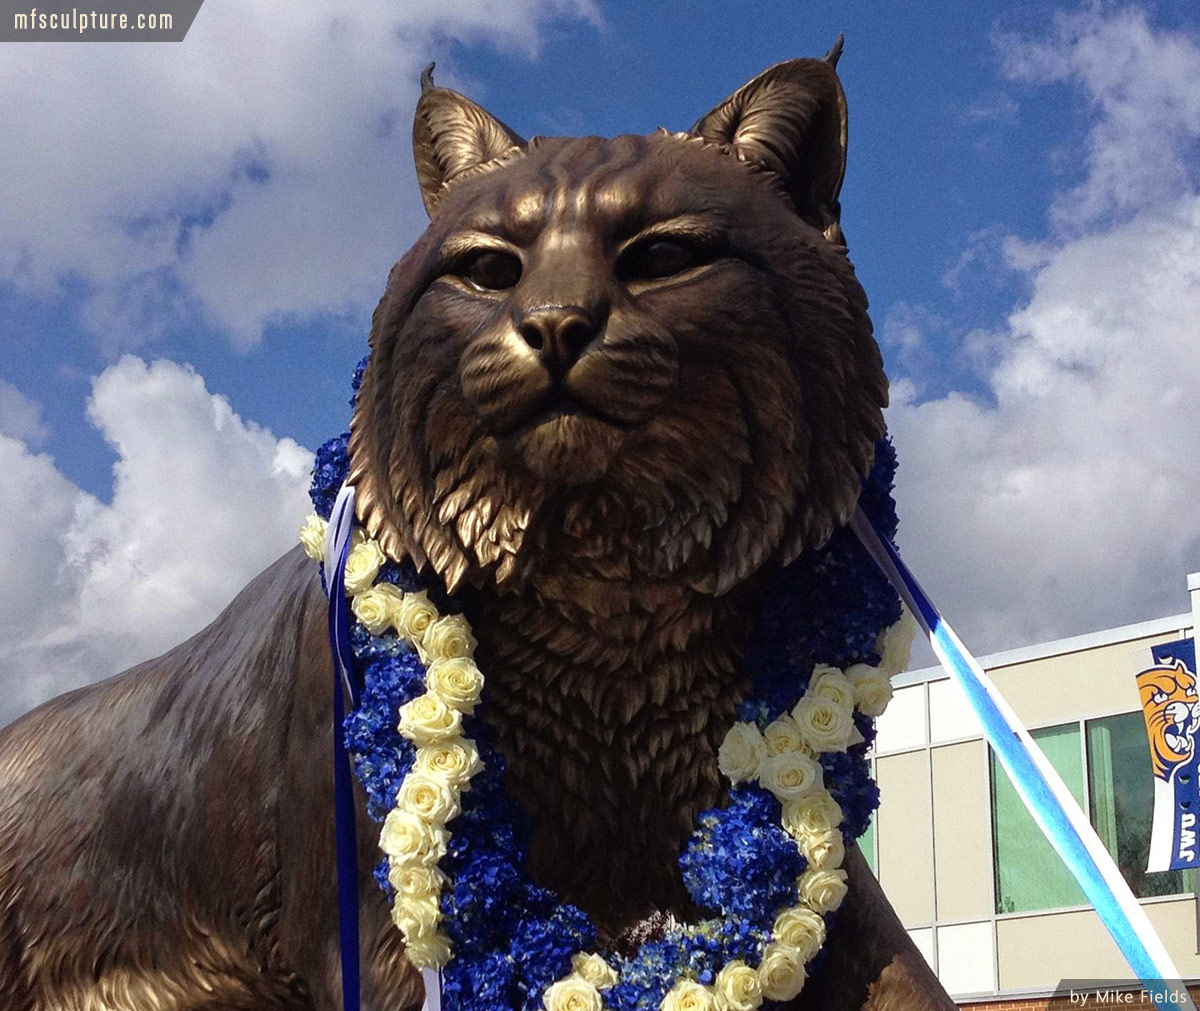 University Wildcat Sculpture Mascot Stadium Public Art 4